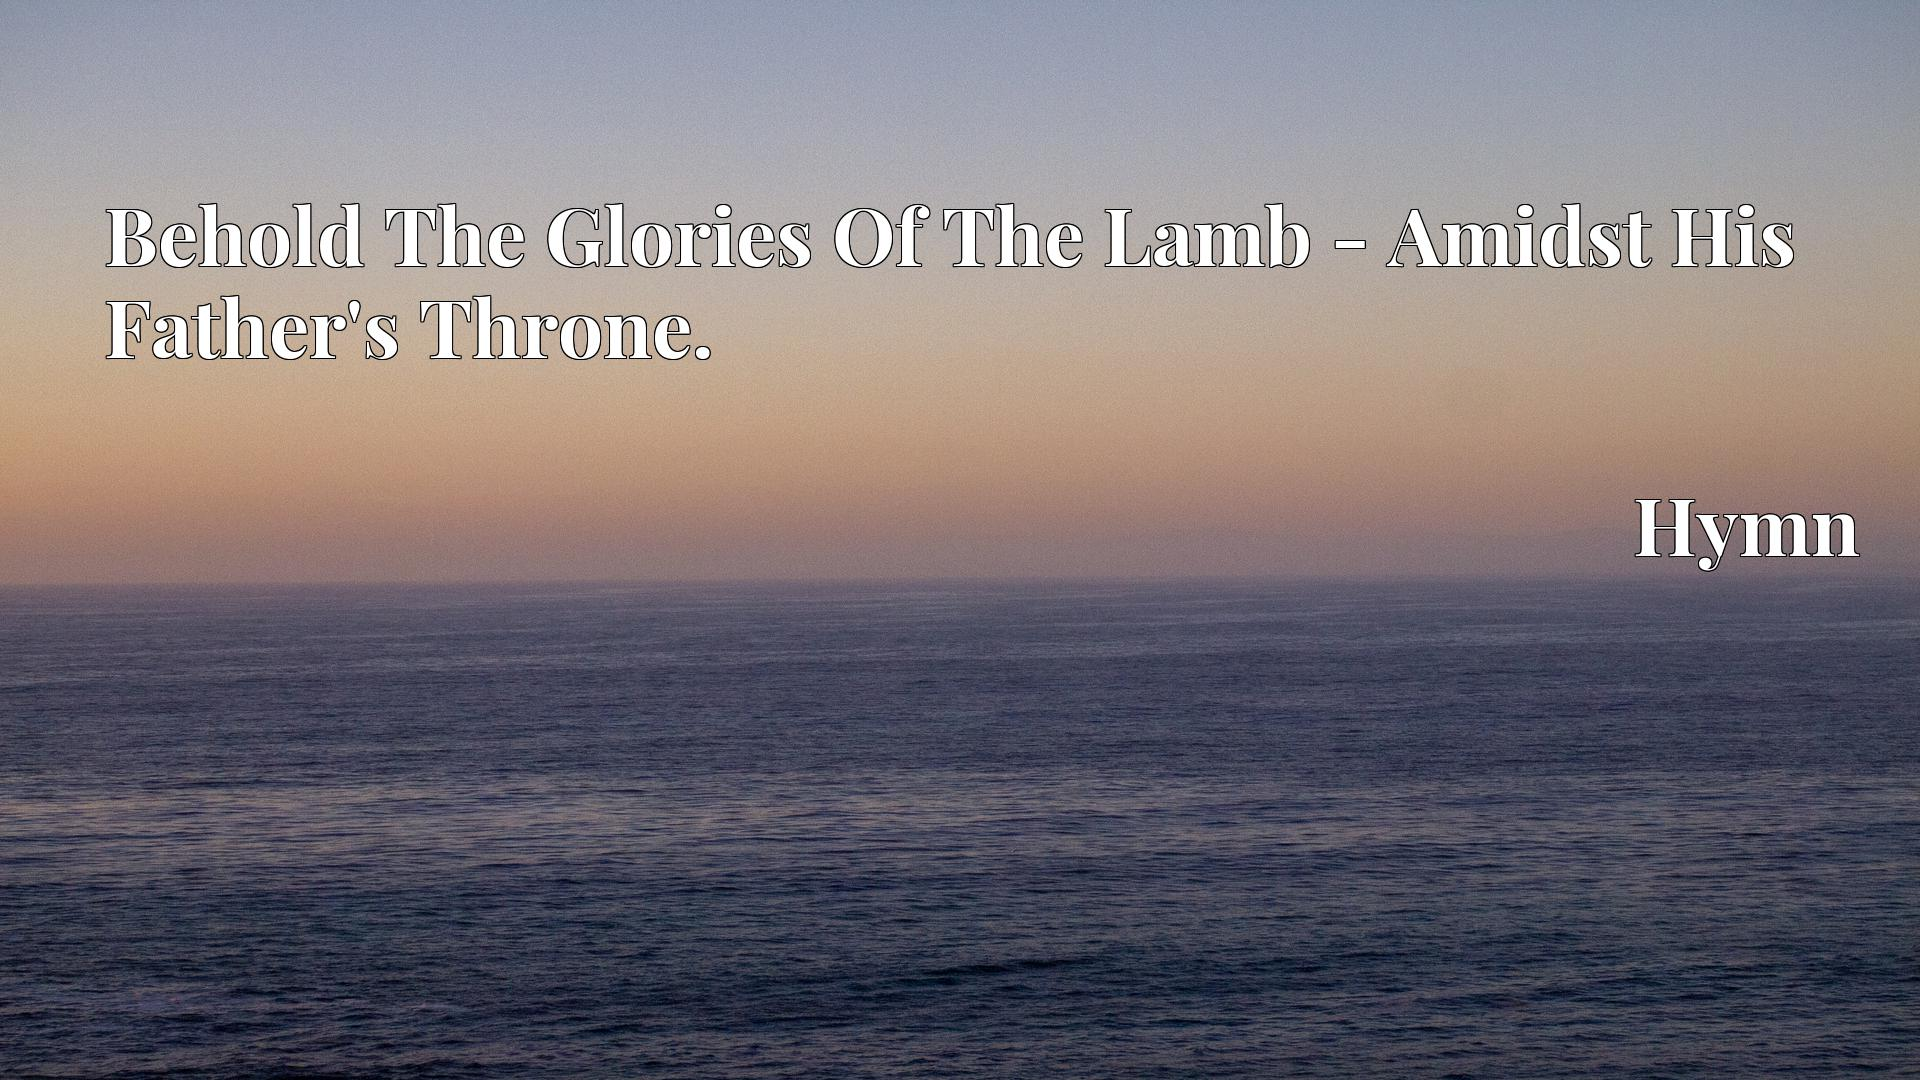 Behold The Glories Of The Lamb - Amidst His Father's Throne. - Hymn